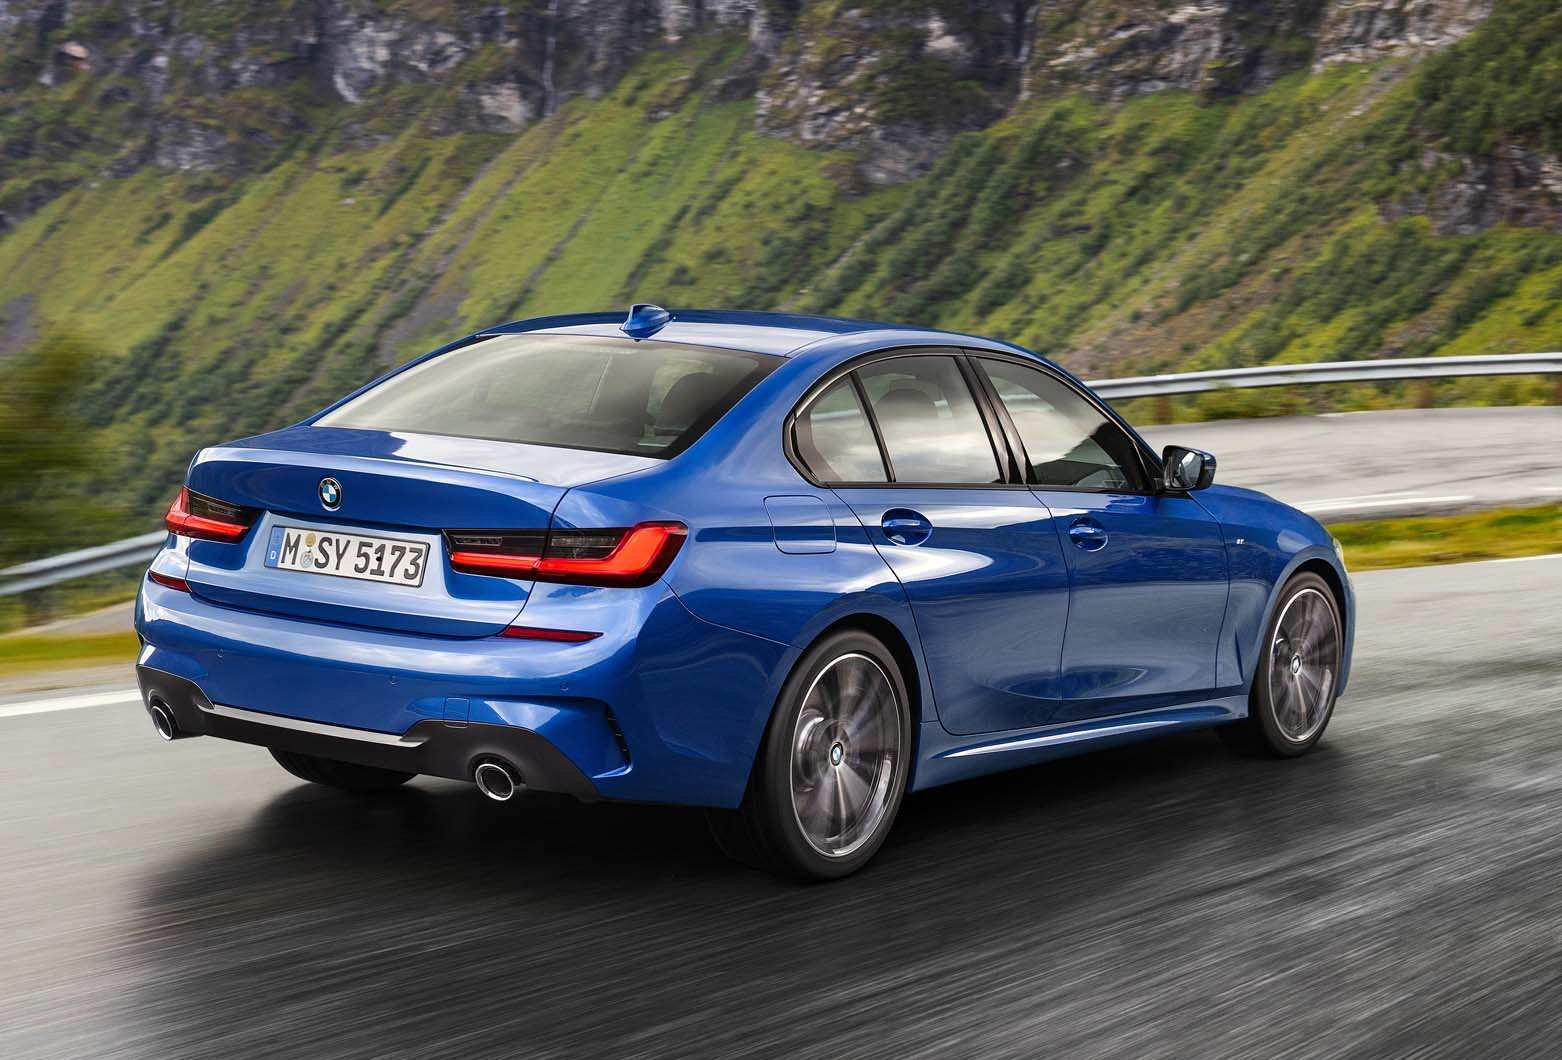 57 The 2019 BMW 3 Series Edrive Phev Engine